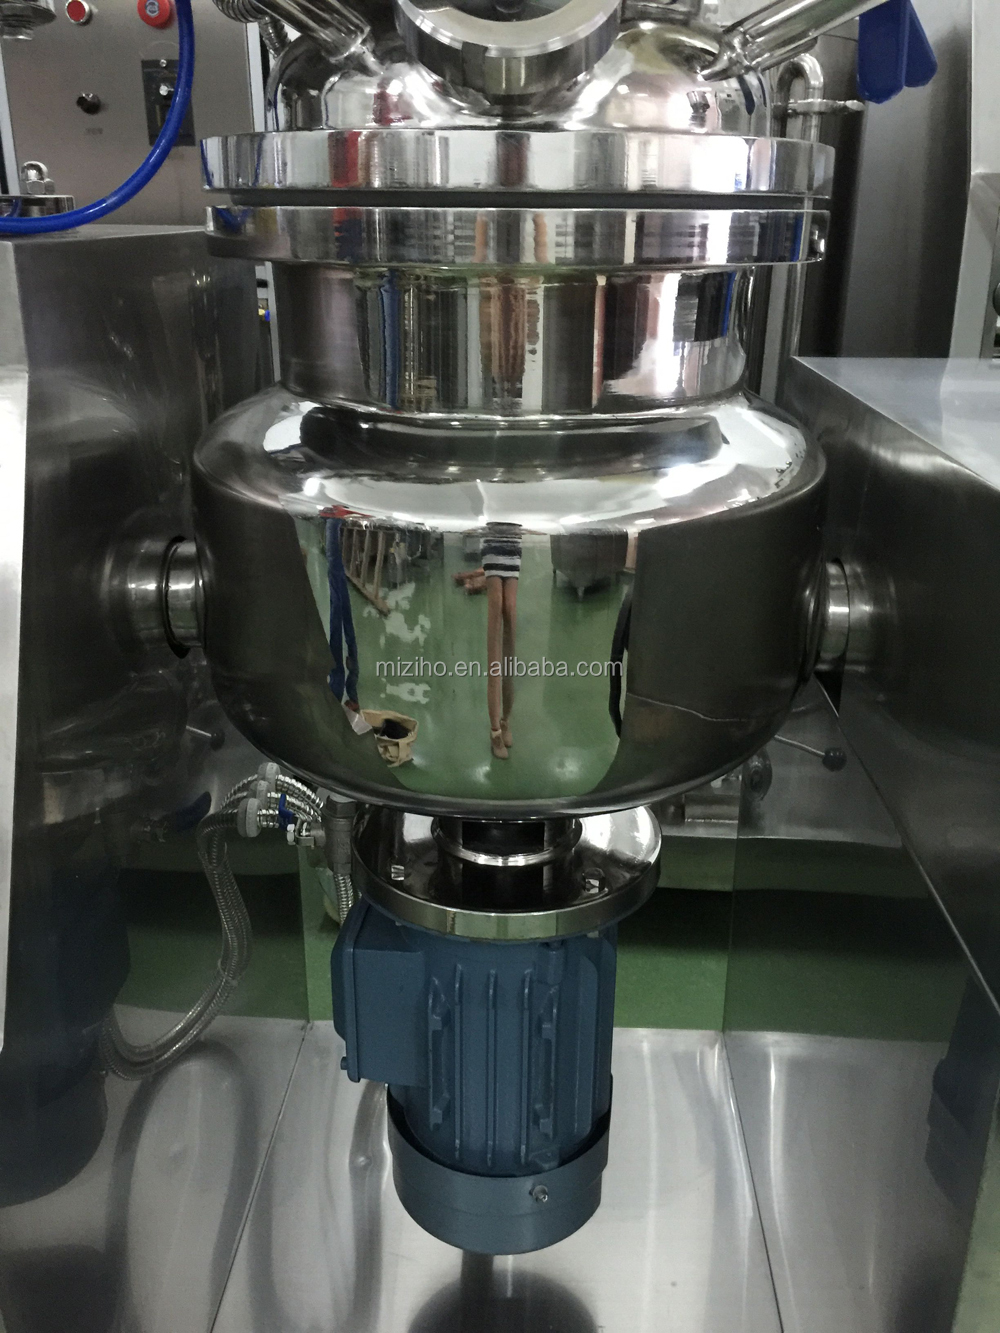 MZH-V10L Eye cream vacuum mixer machine